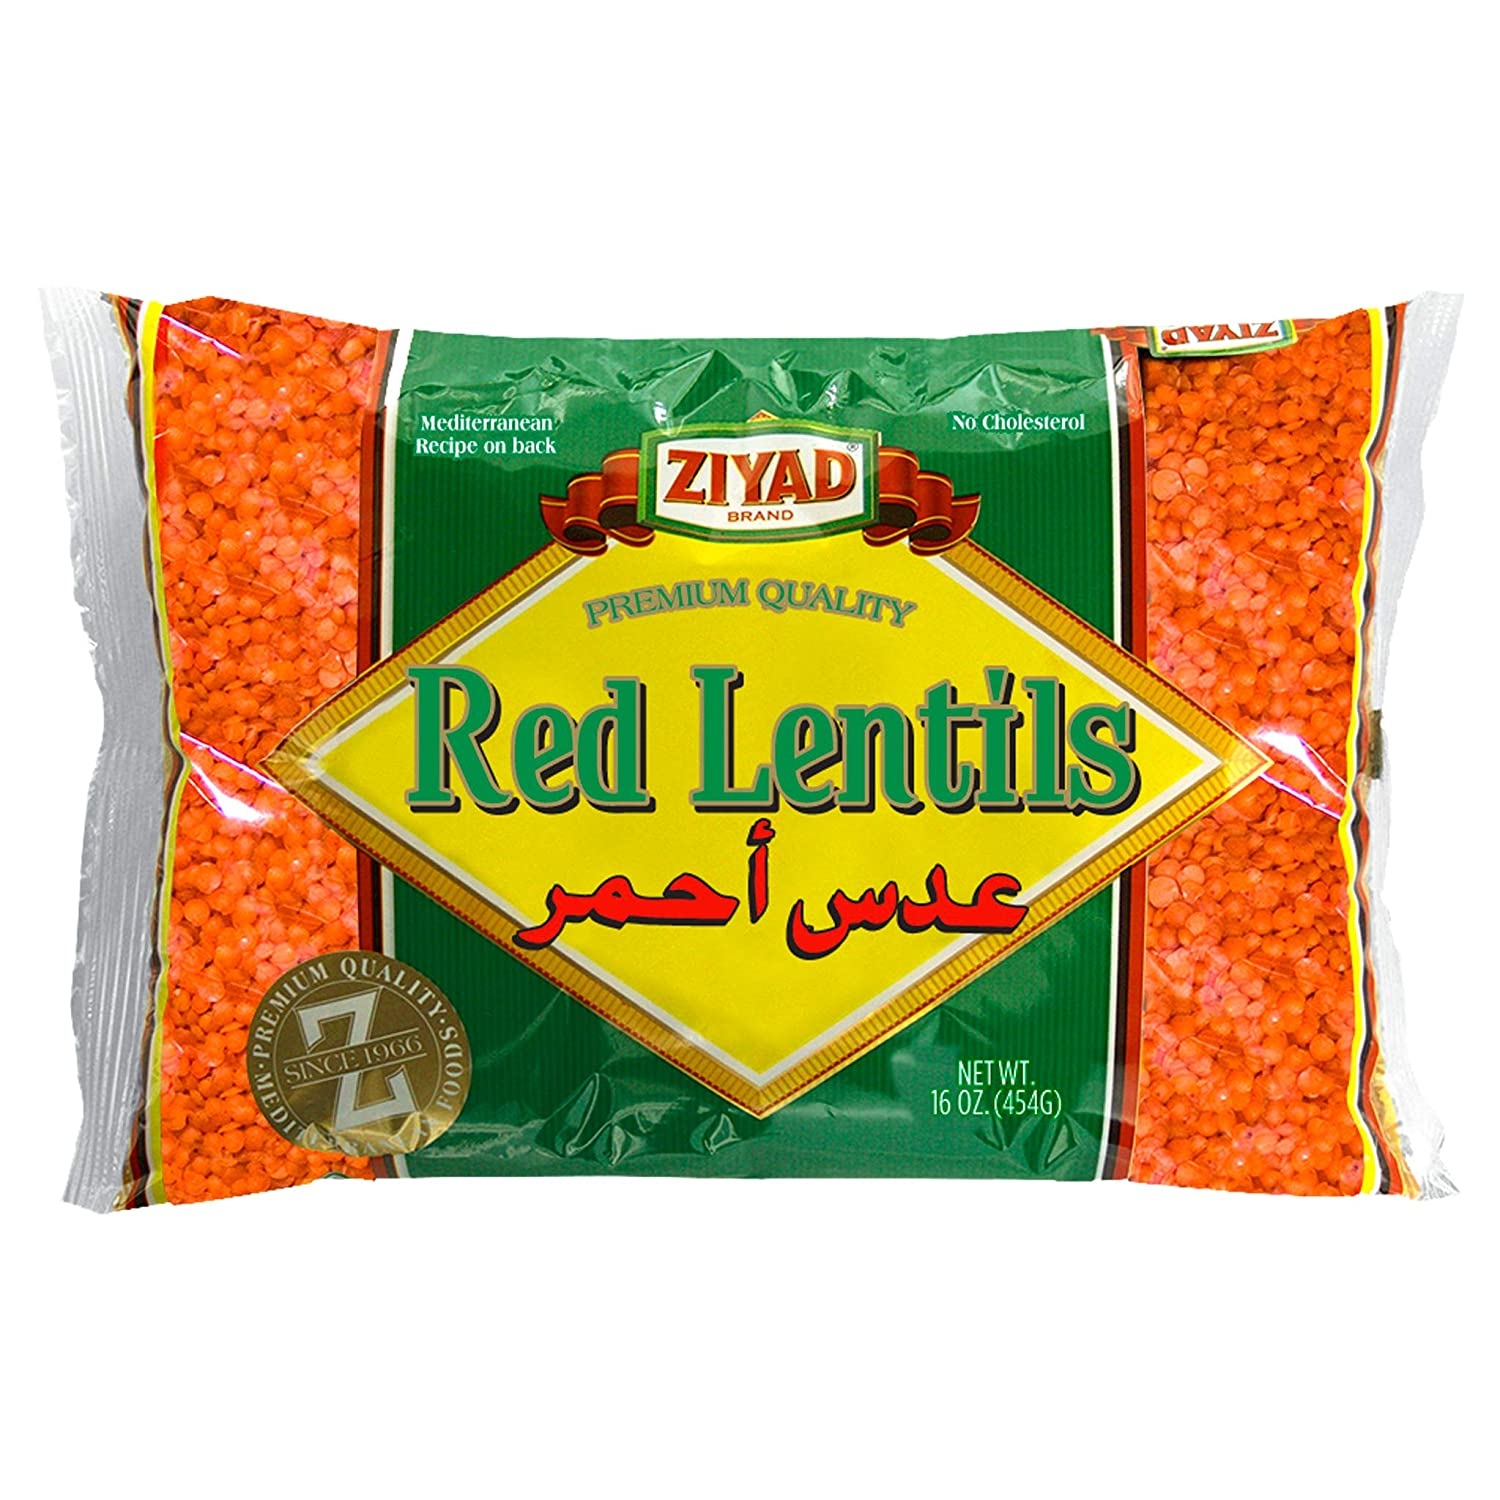 Ziyad Gourmet Red Lentils, Superfood, Ancient Grains, 100% All-Natural, No Additives, No Preservatives, Great Source of Protein, 16 oz Pack of 6